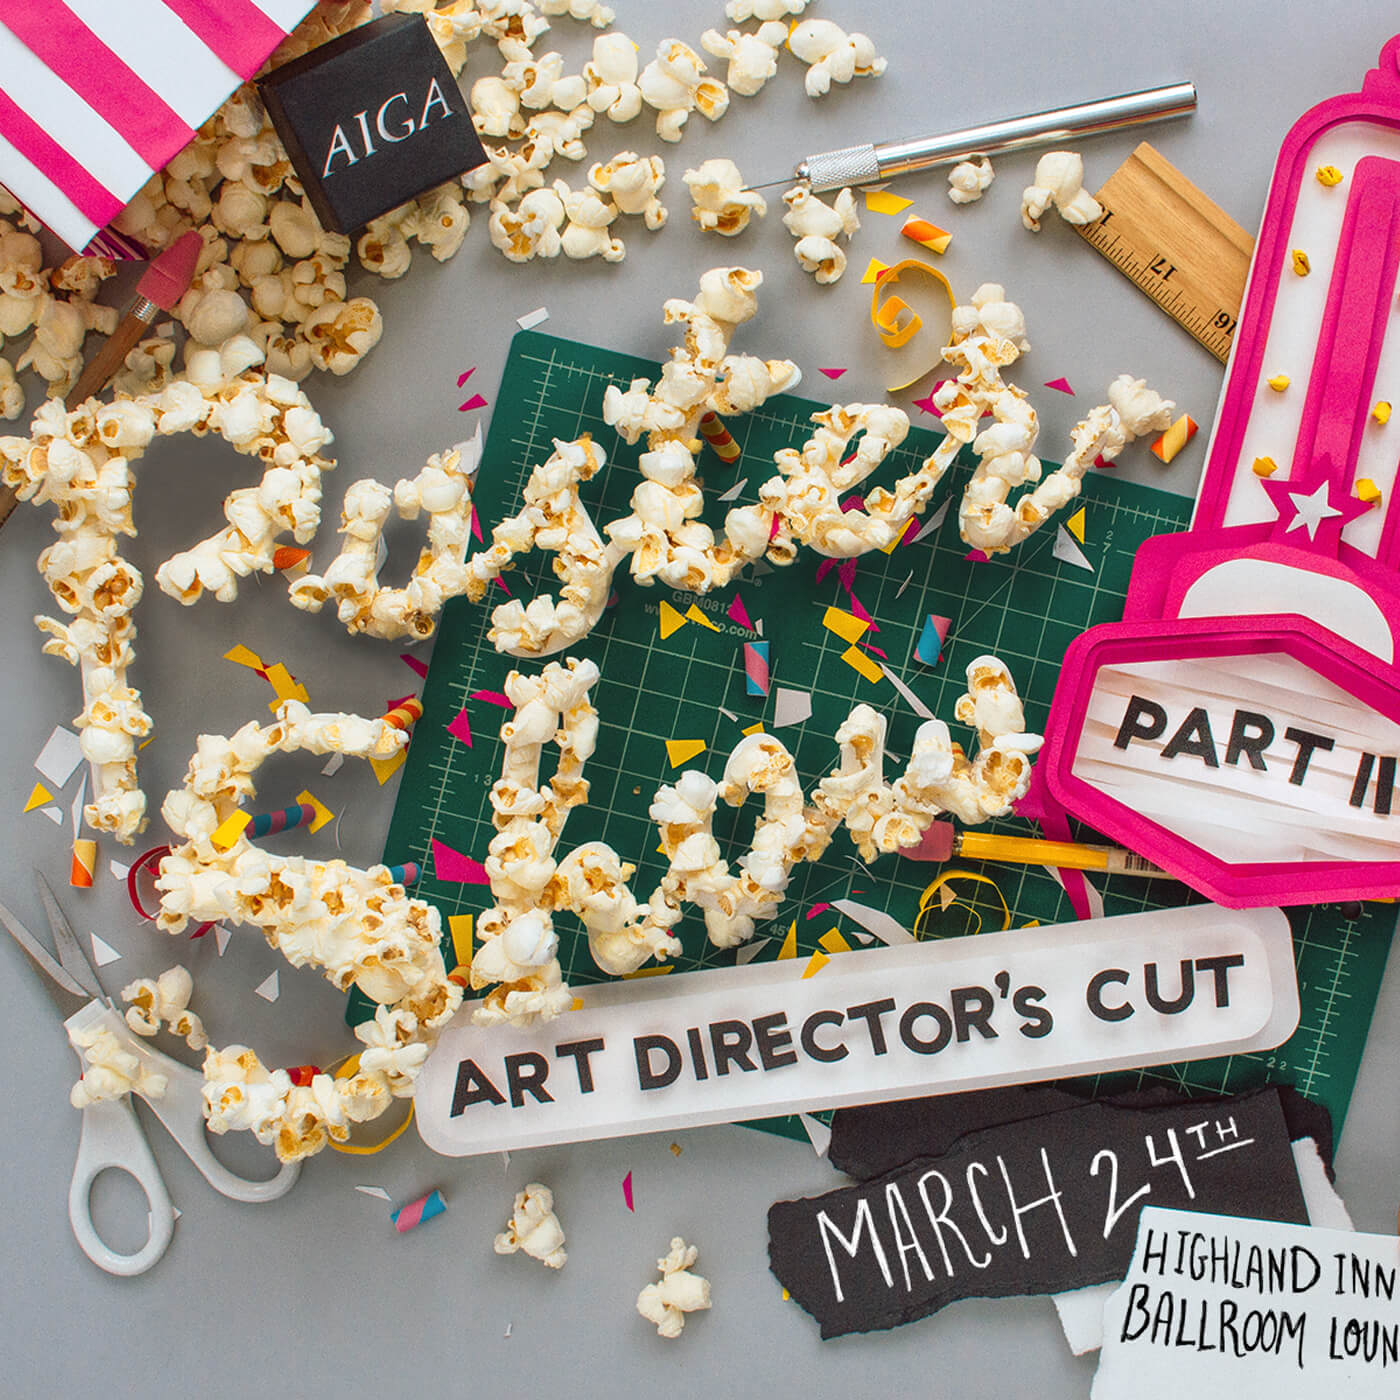 "AIGA Atlanta Poster Show - Promotional artwork and call for submissions for AIGA Atlanta's showcase of movie-inspired poster designs, ""Poster Show Part II: Art Director's Cut.""View Project →"